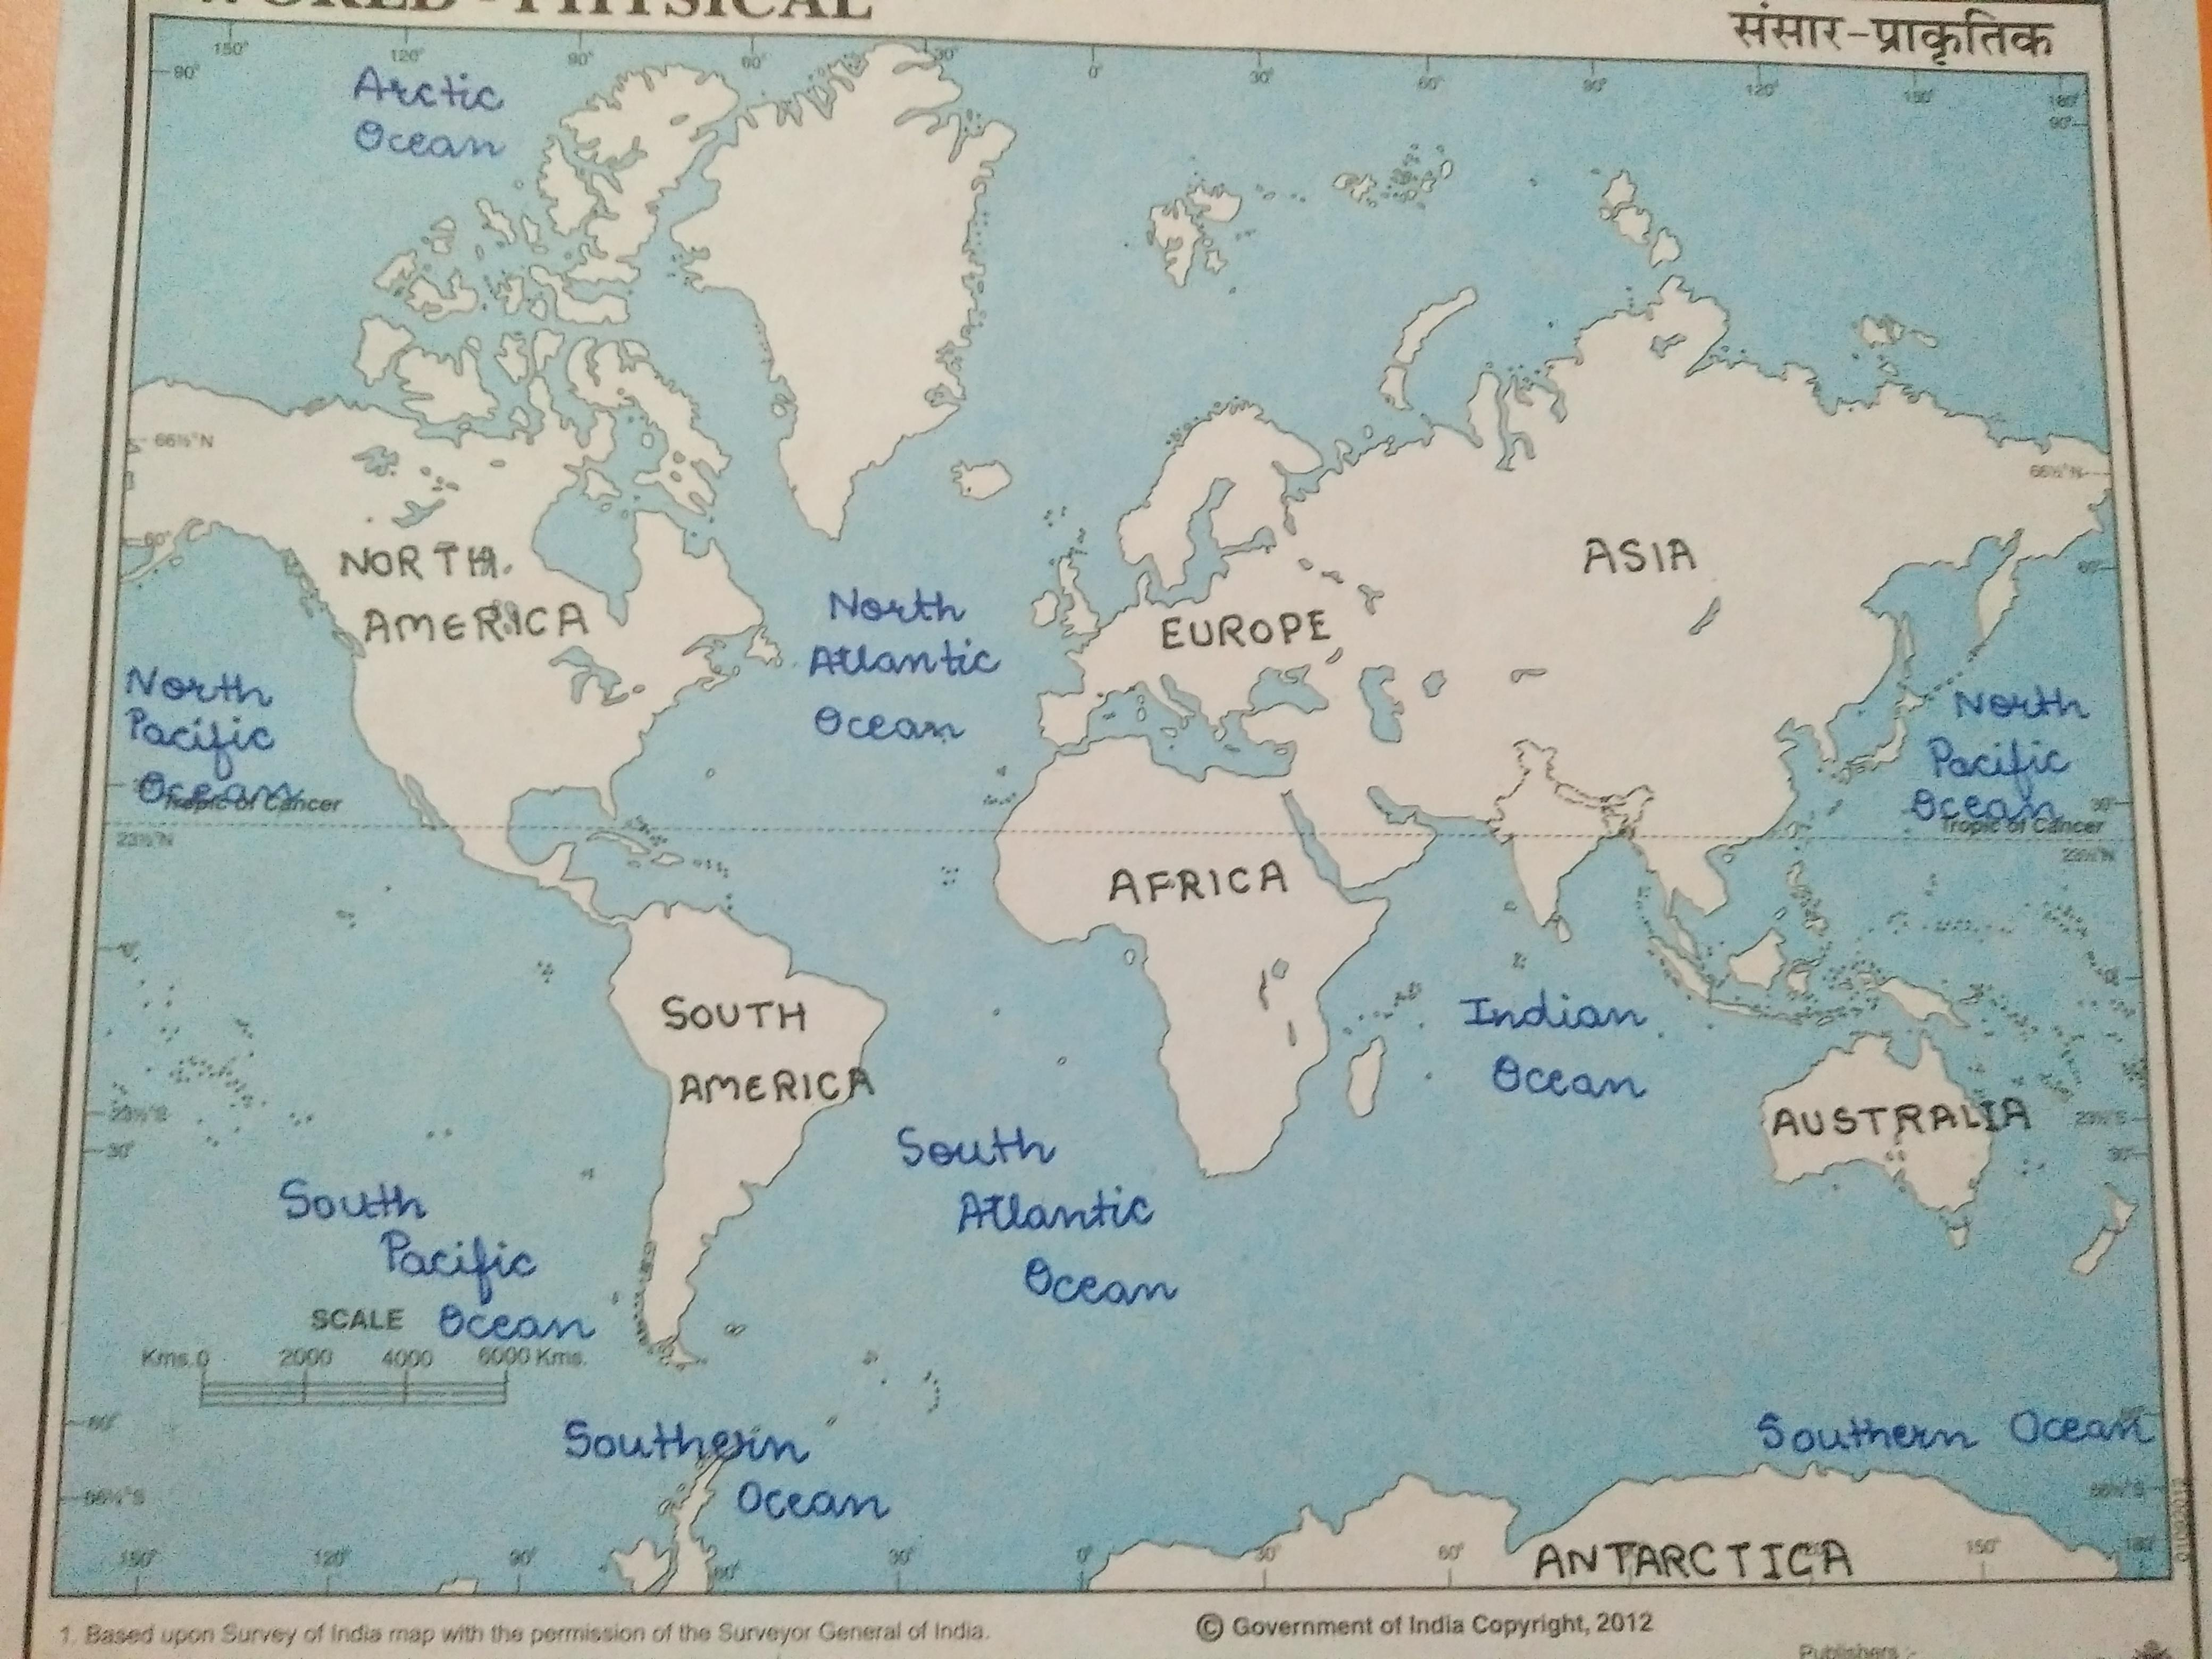 World Map Mark All Continents And Oceans In The World Map Brainly In